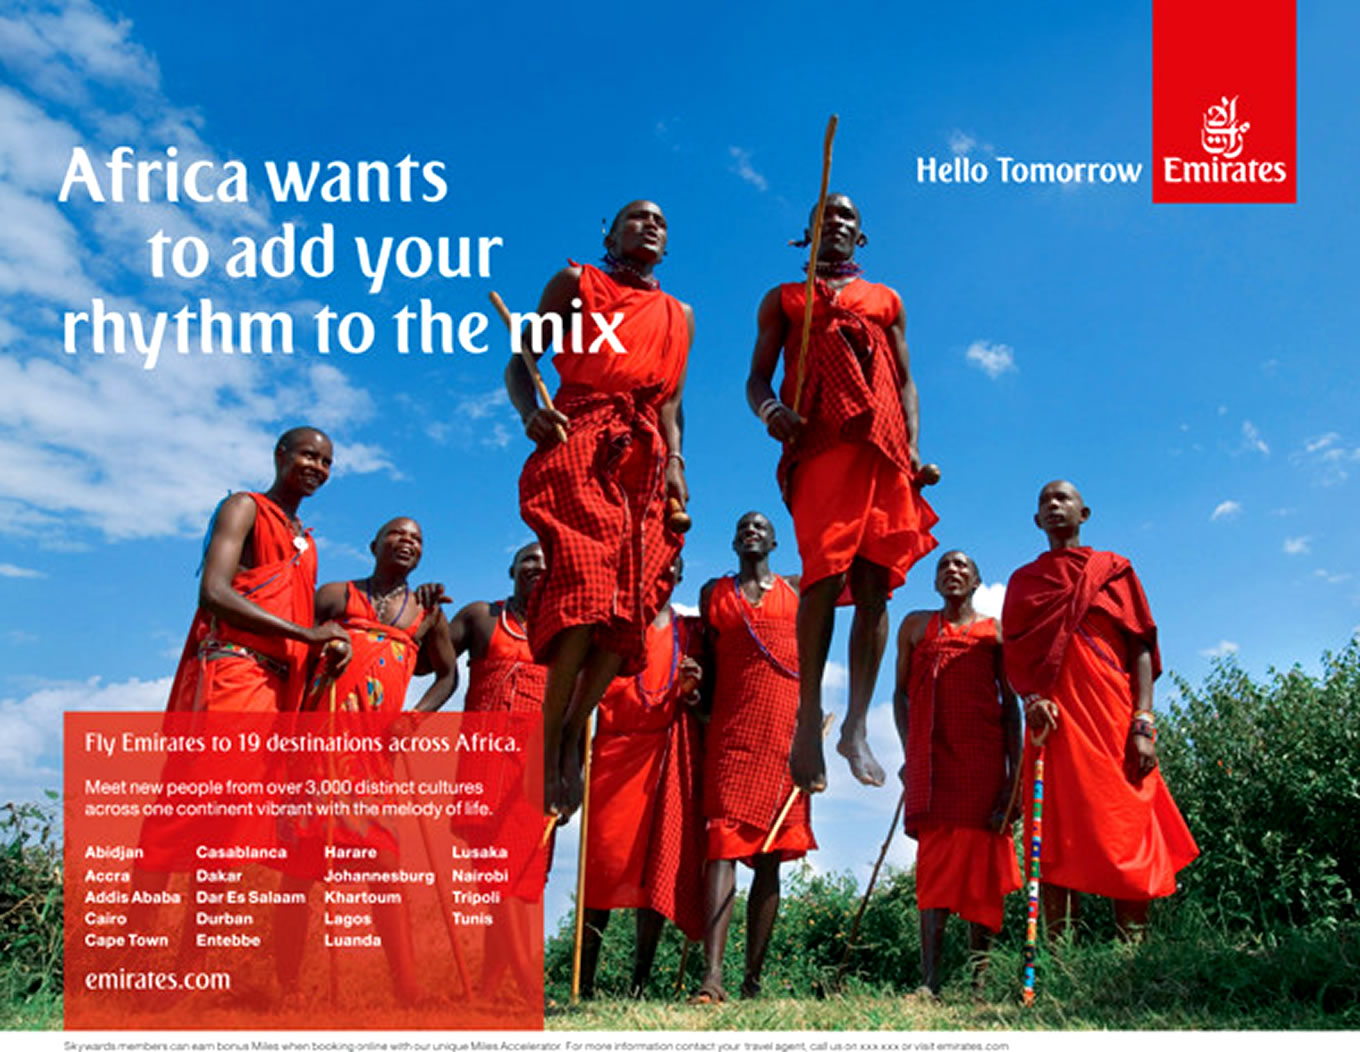 Destination Africa, Hello Tomorrow Marketing Campaign by Emirates Airlines